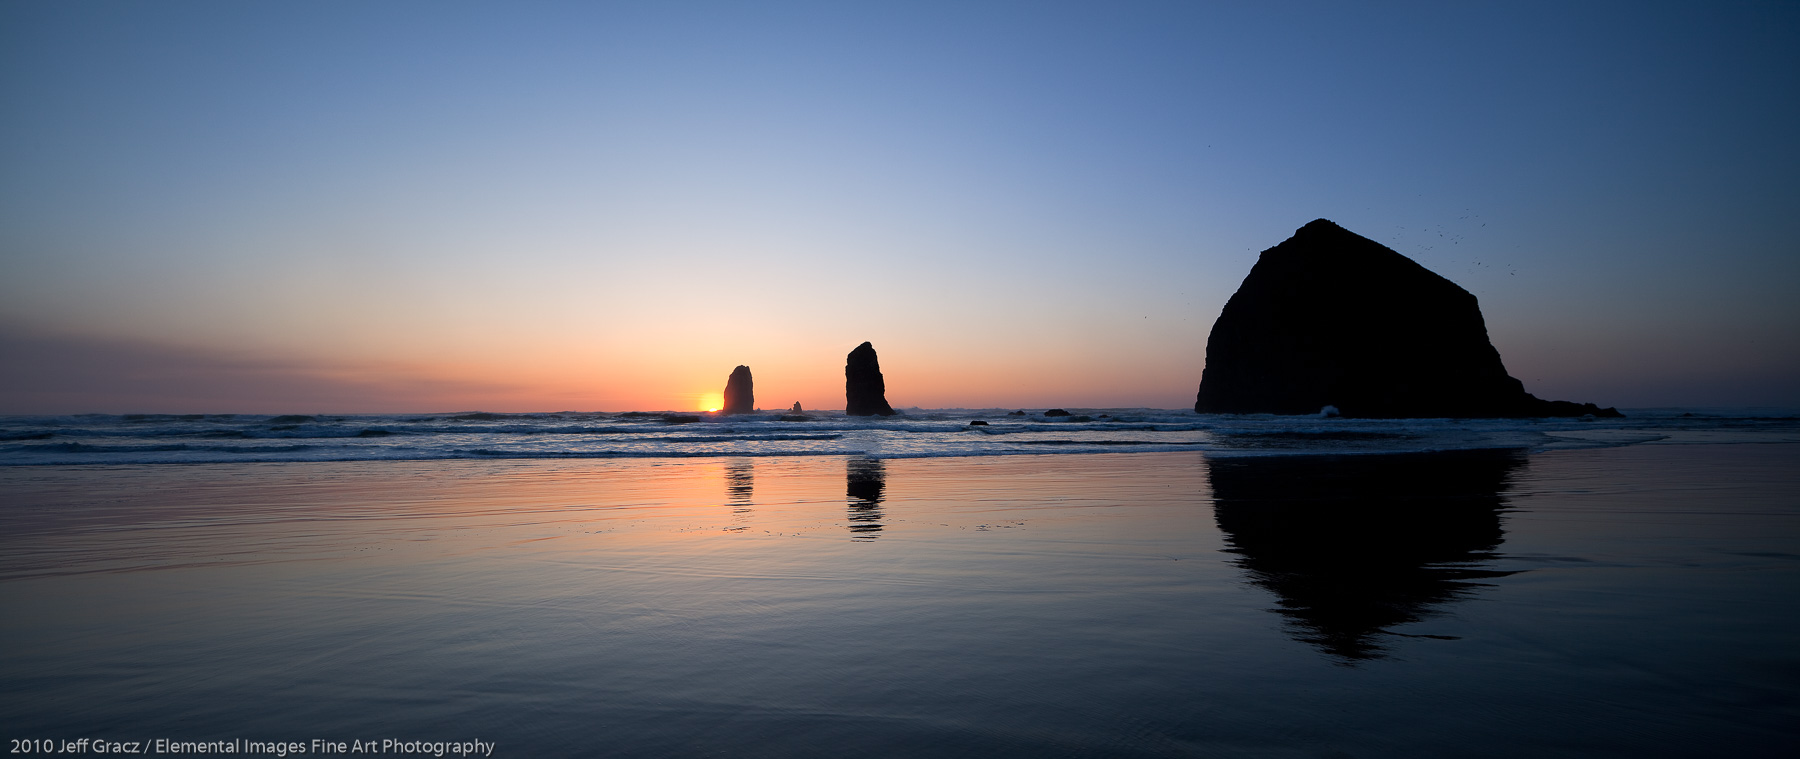 Cannon Beach seastacks at sunset | Cannon Beach | OR |  - © 2010 Jeff Gracz / Elemental Images Fine Art Photography - All Rights Reserved Worldwide